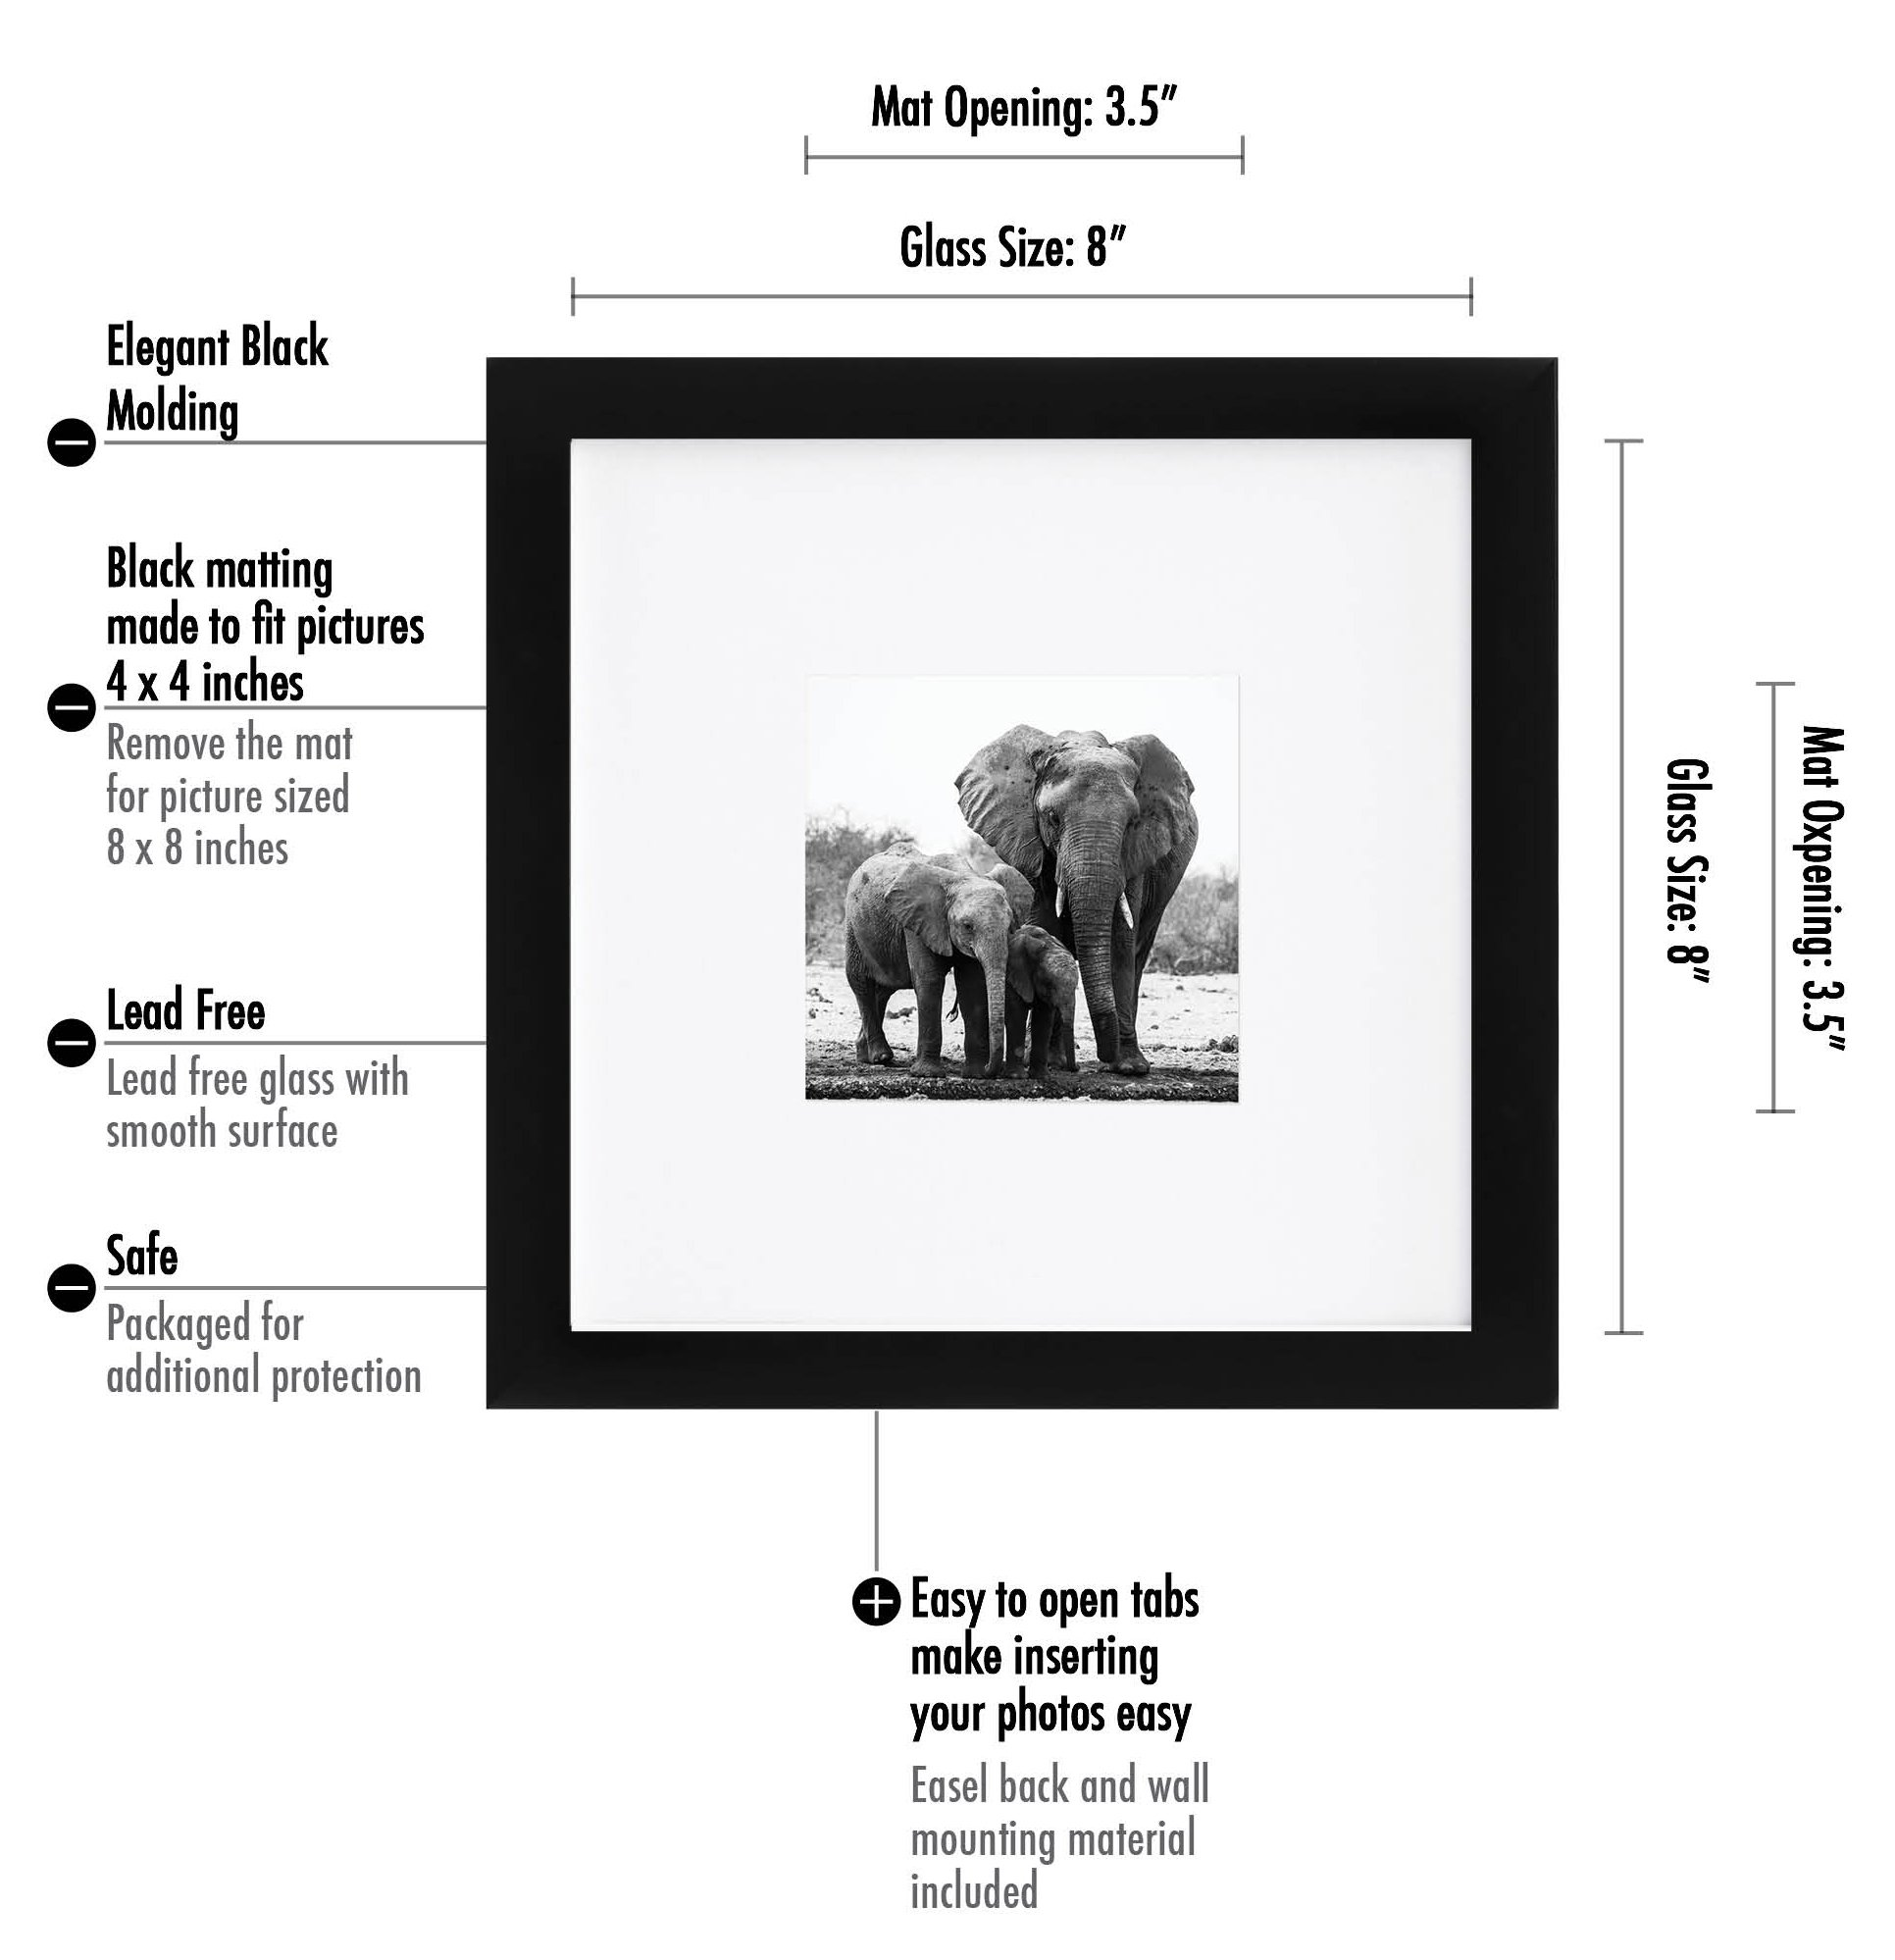 Americanflat 8x8 Picture Frame - Display Pictures 4x4 with Mat - Display Pictures 8x8 Without Mat, Black by Americanflat